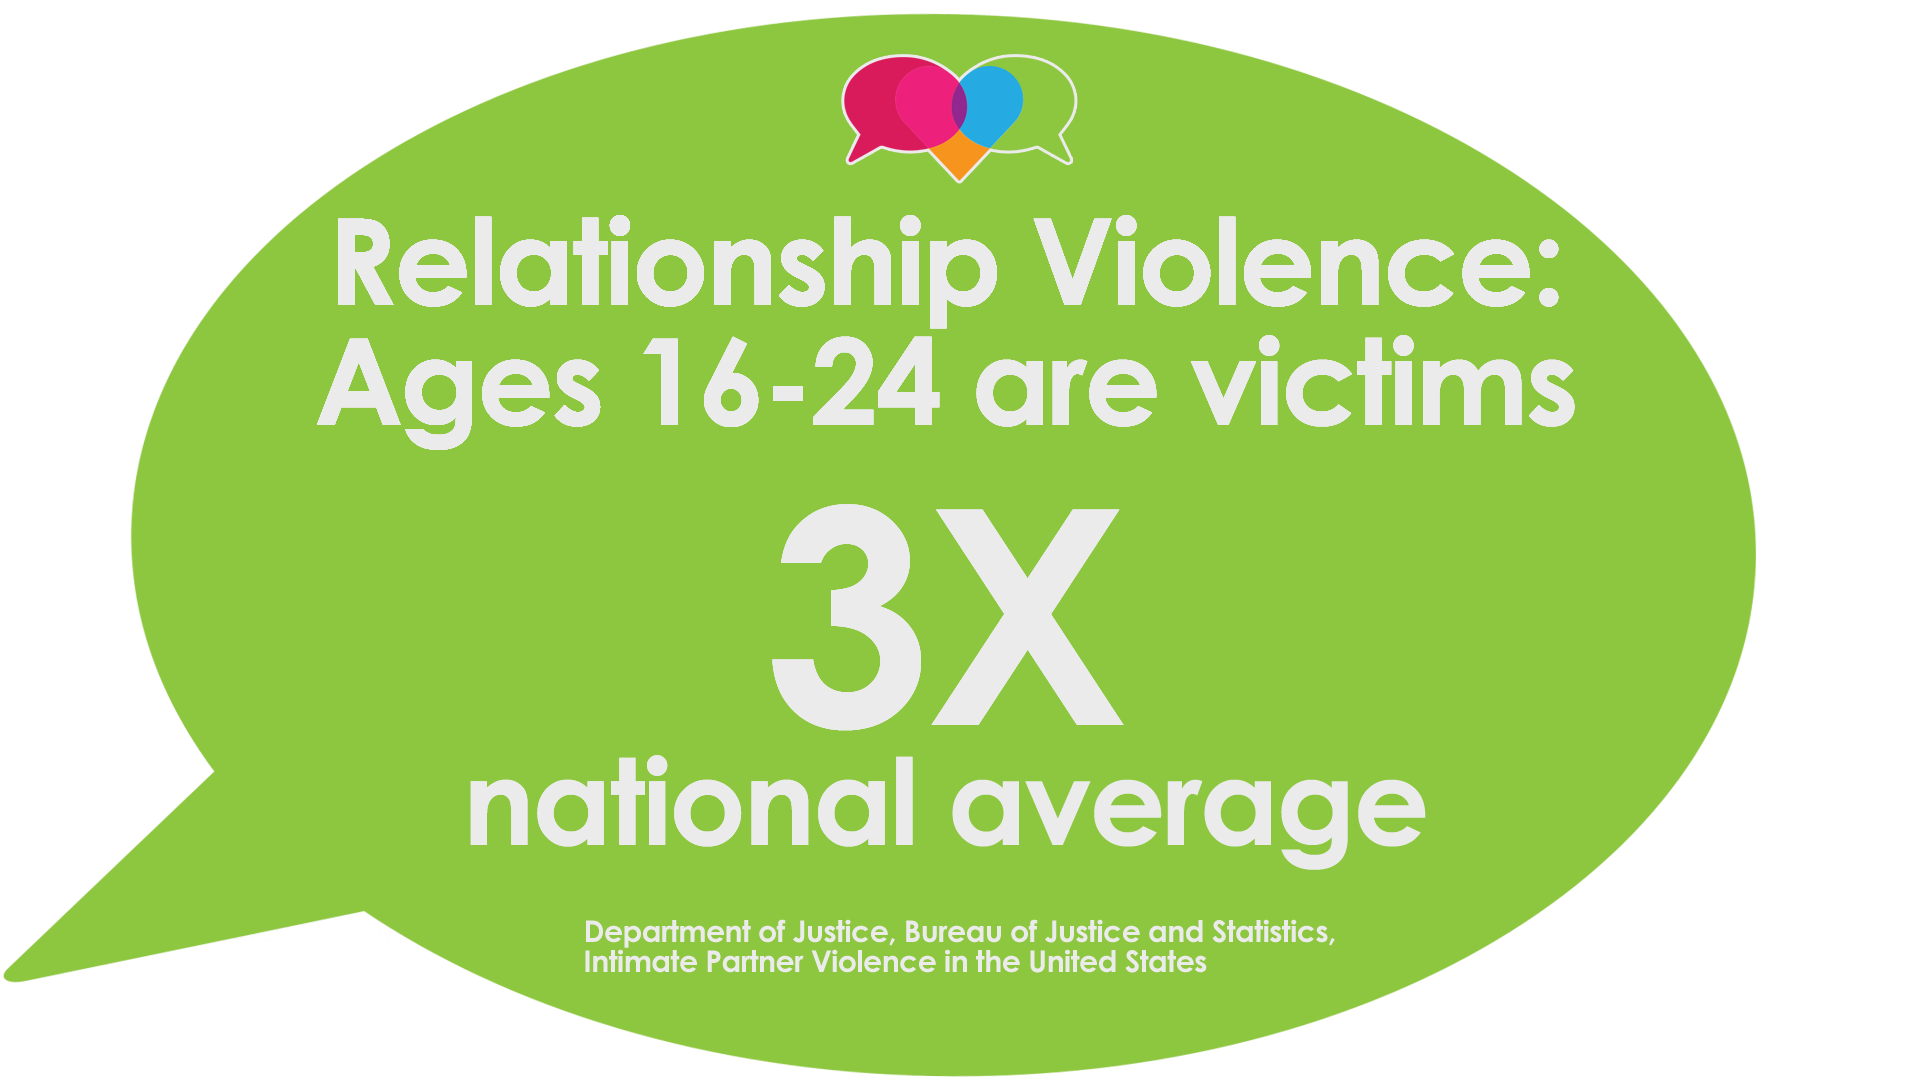 Relationship Violence: Ages 16-24 are victims three times the national average